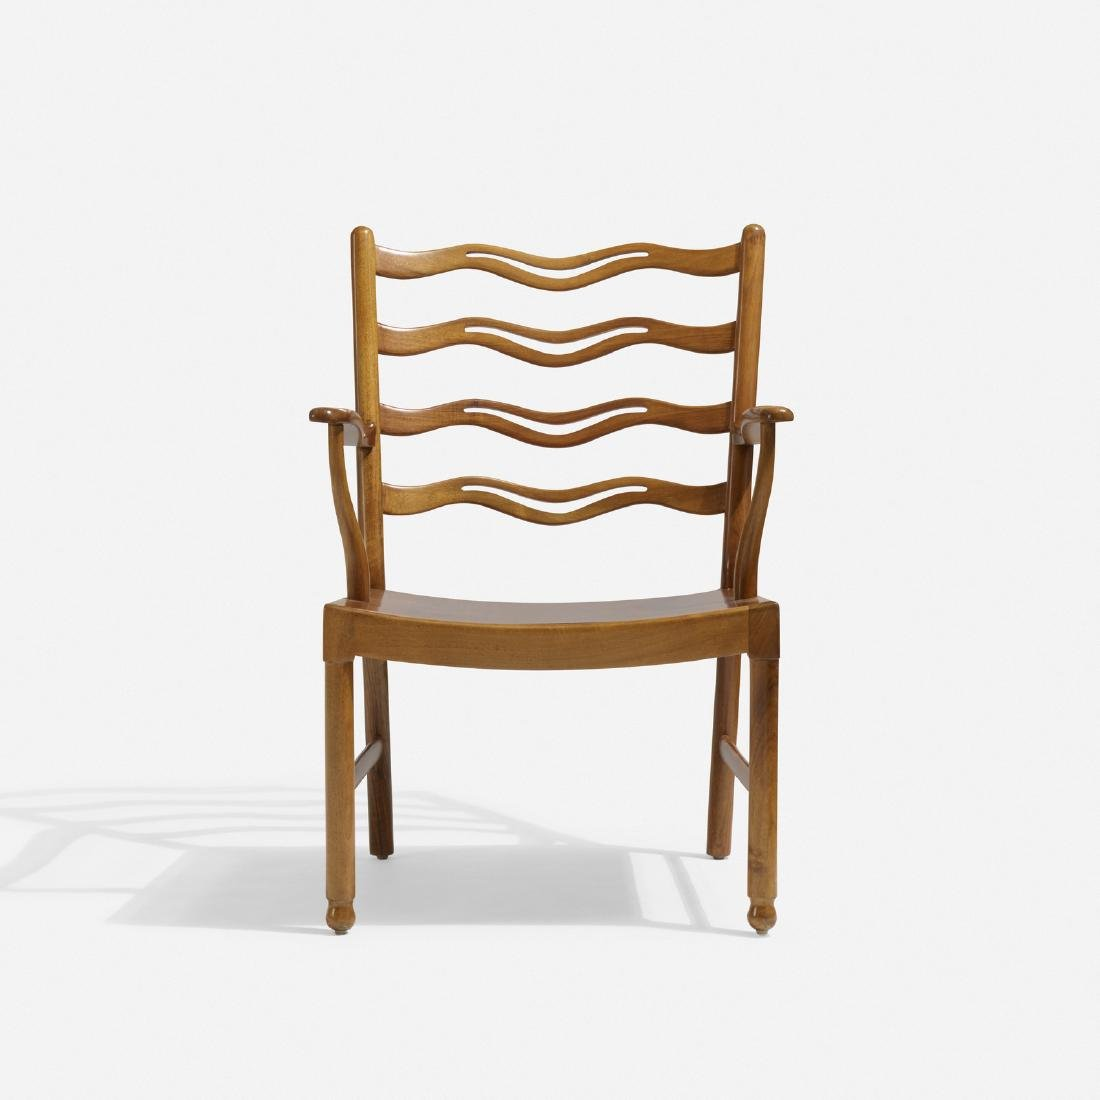 Ole Wanscher, lounge chair